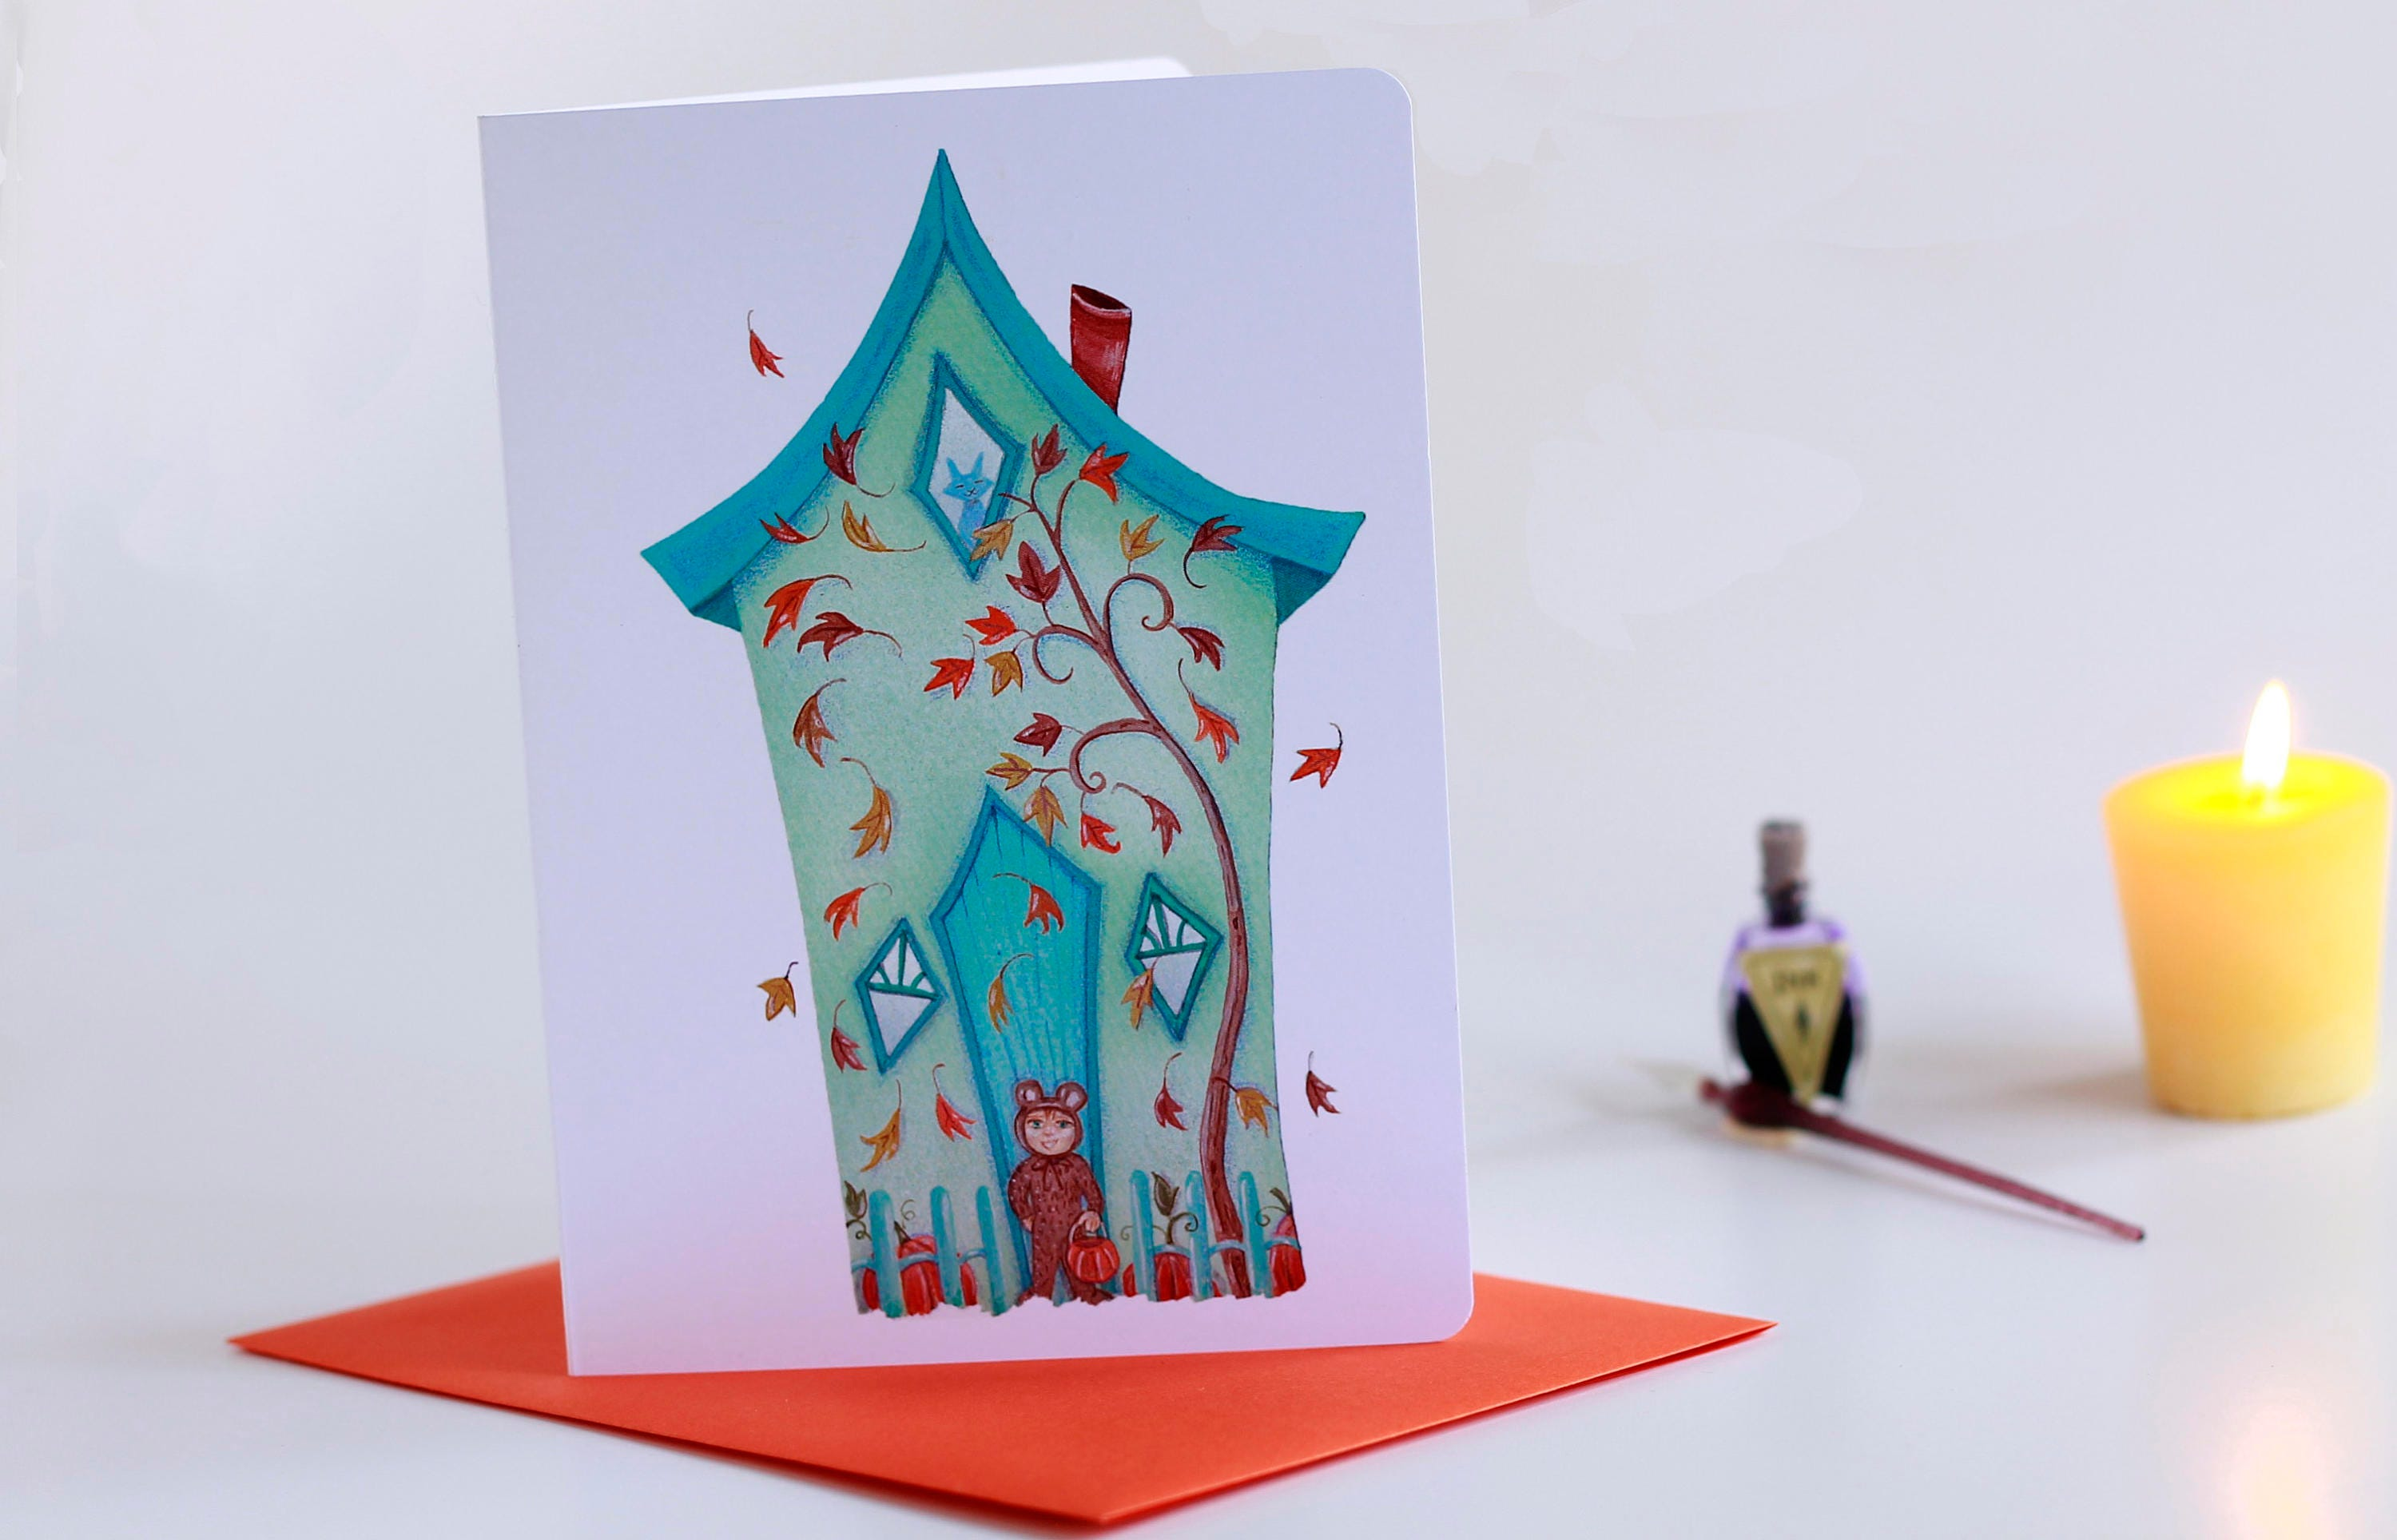 Falling leaves blank card trick or treat greeting card halloween gallery photo gallery photo gallery photo gallery photo m4hsunfo